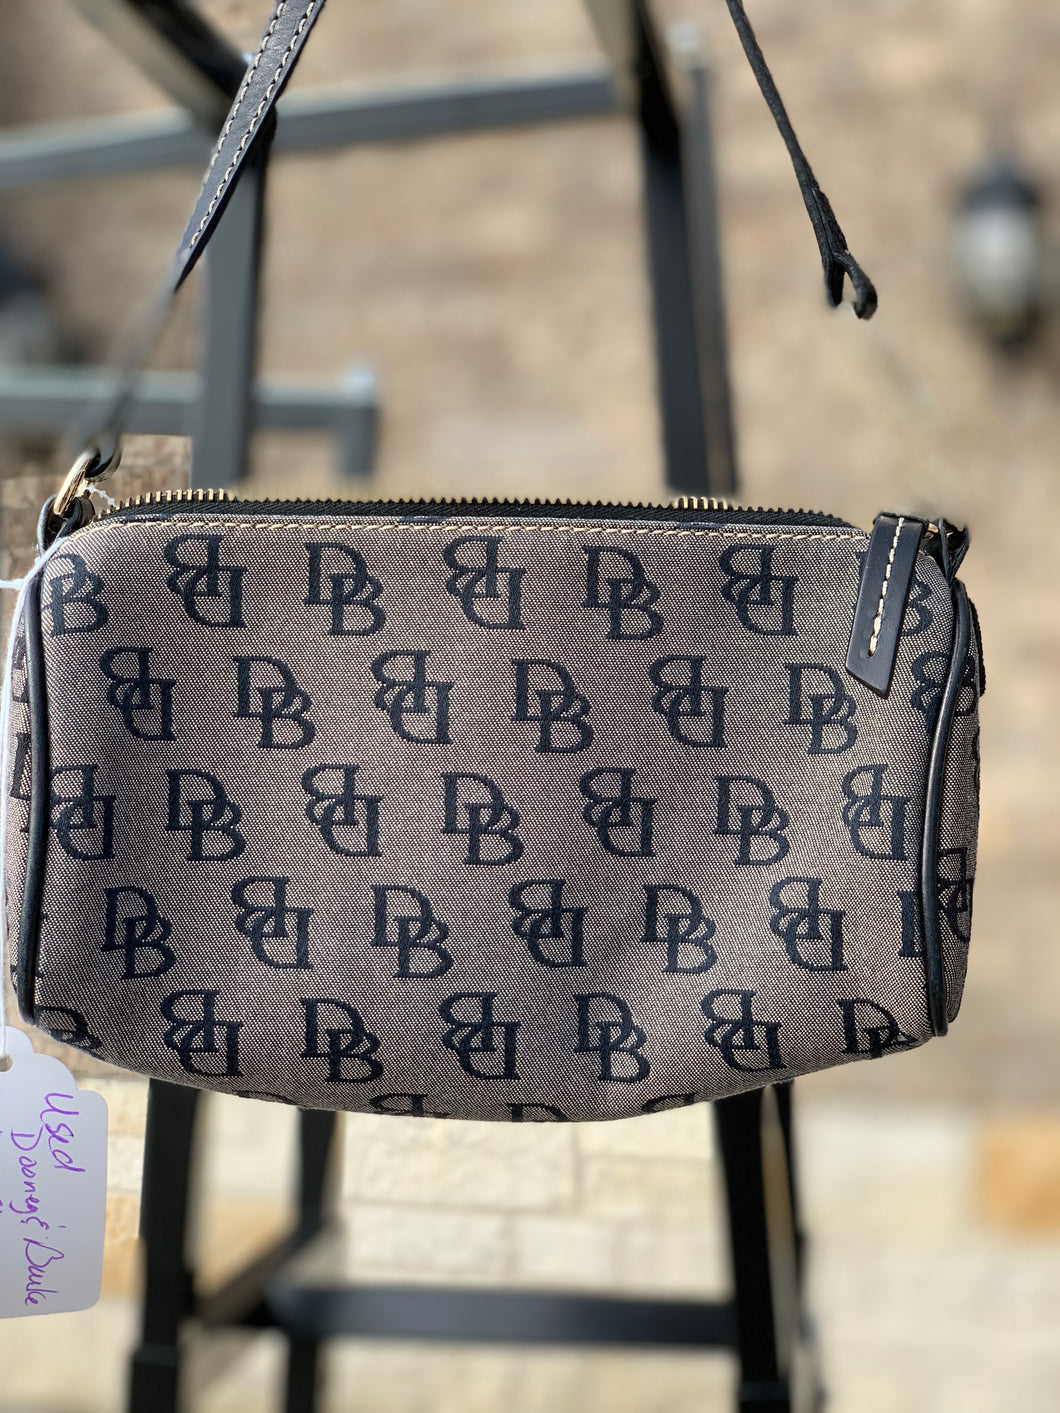 USED DOONEY & BOURKE WRISTLET